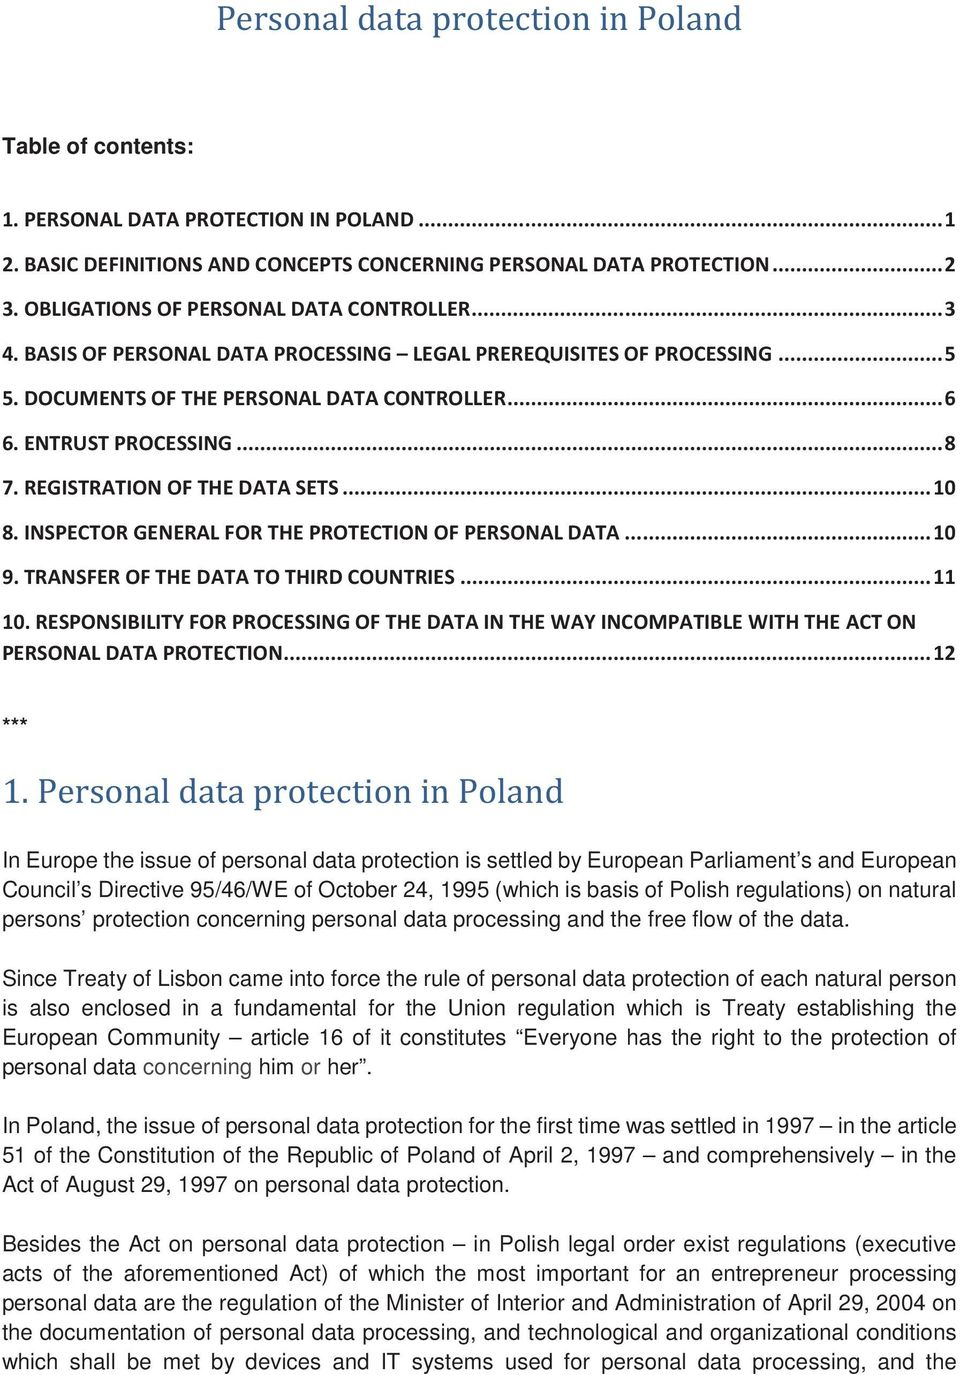 Since Treaty of Lisbon came into force the rule of personal data protection of each natural person is also enclosed in a fundamental for the Union regulation which is Treaty establishing the European